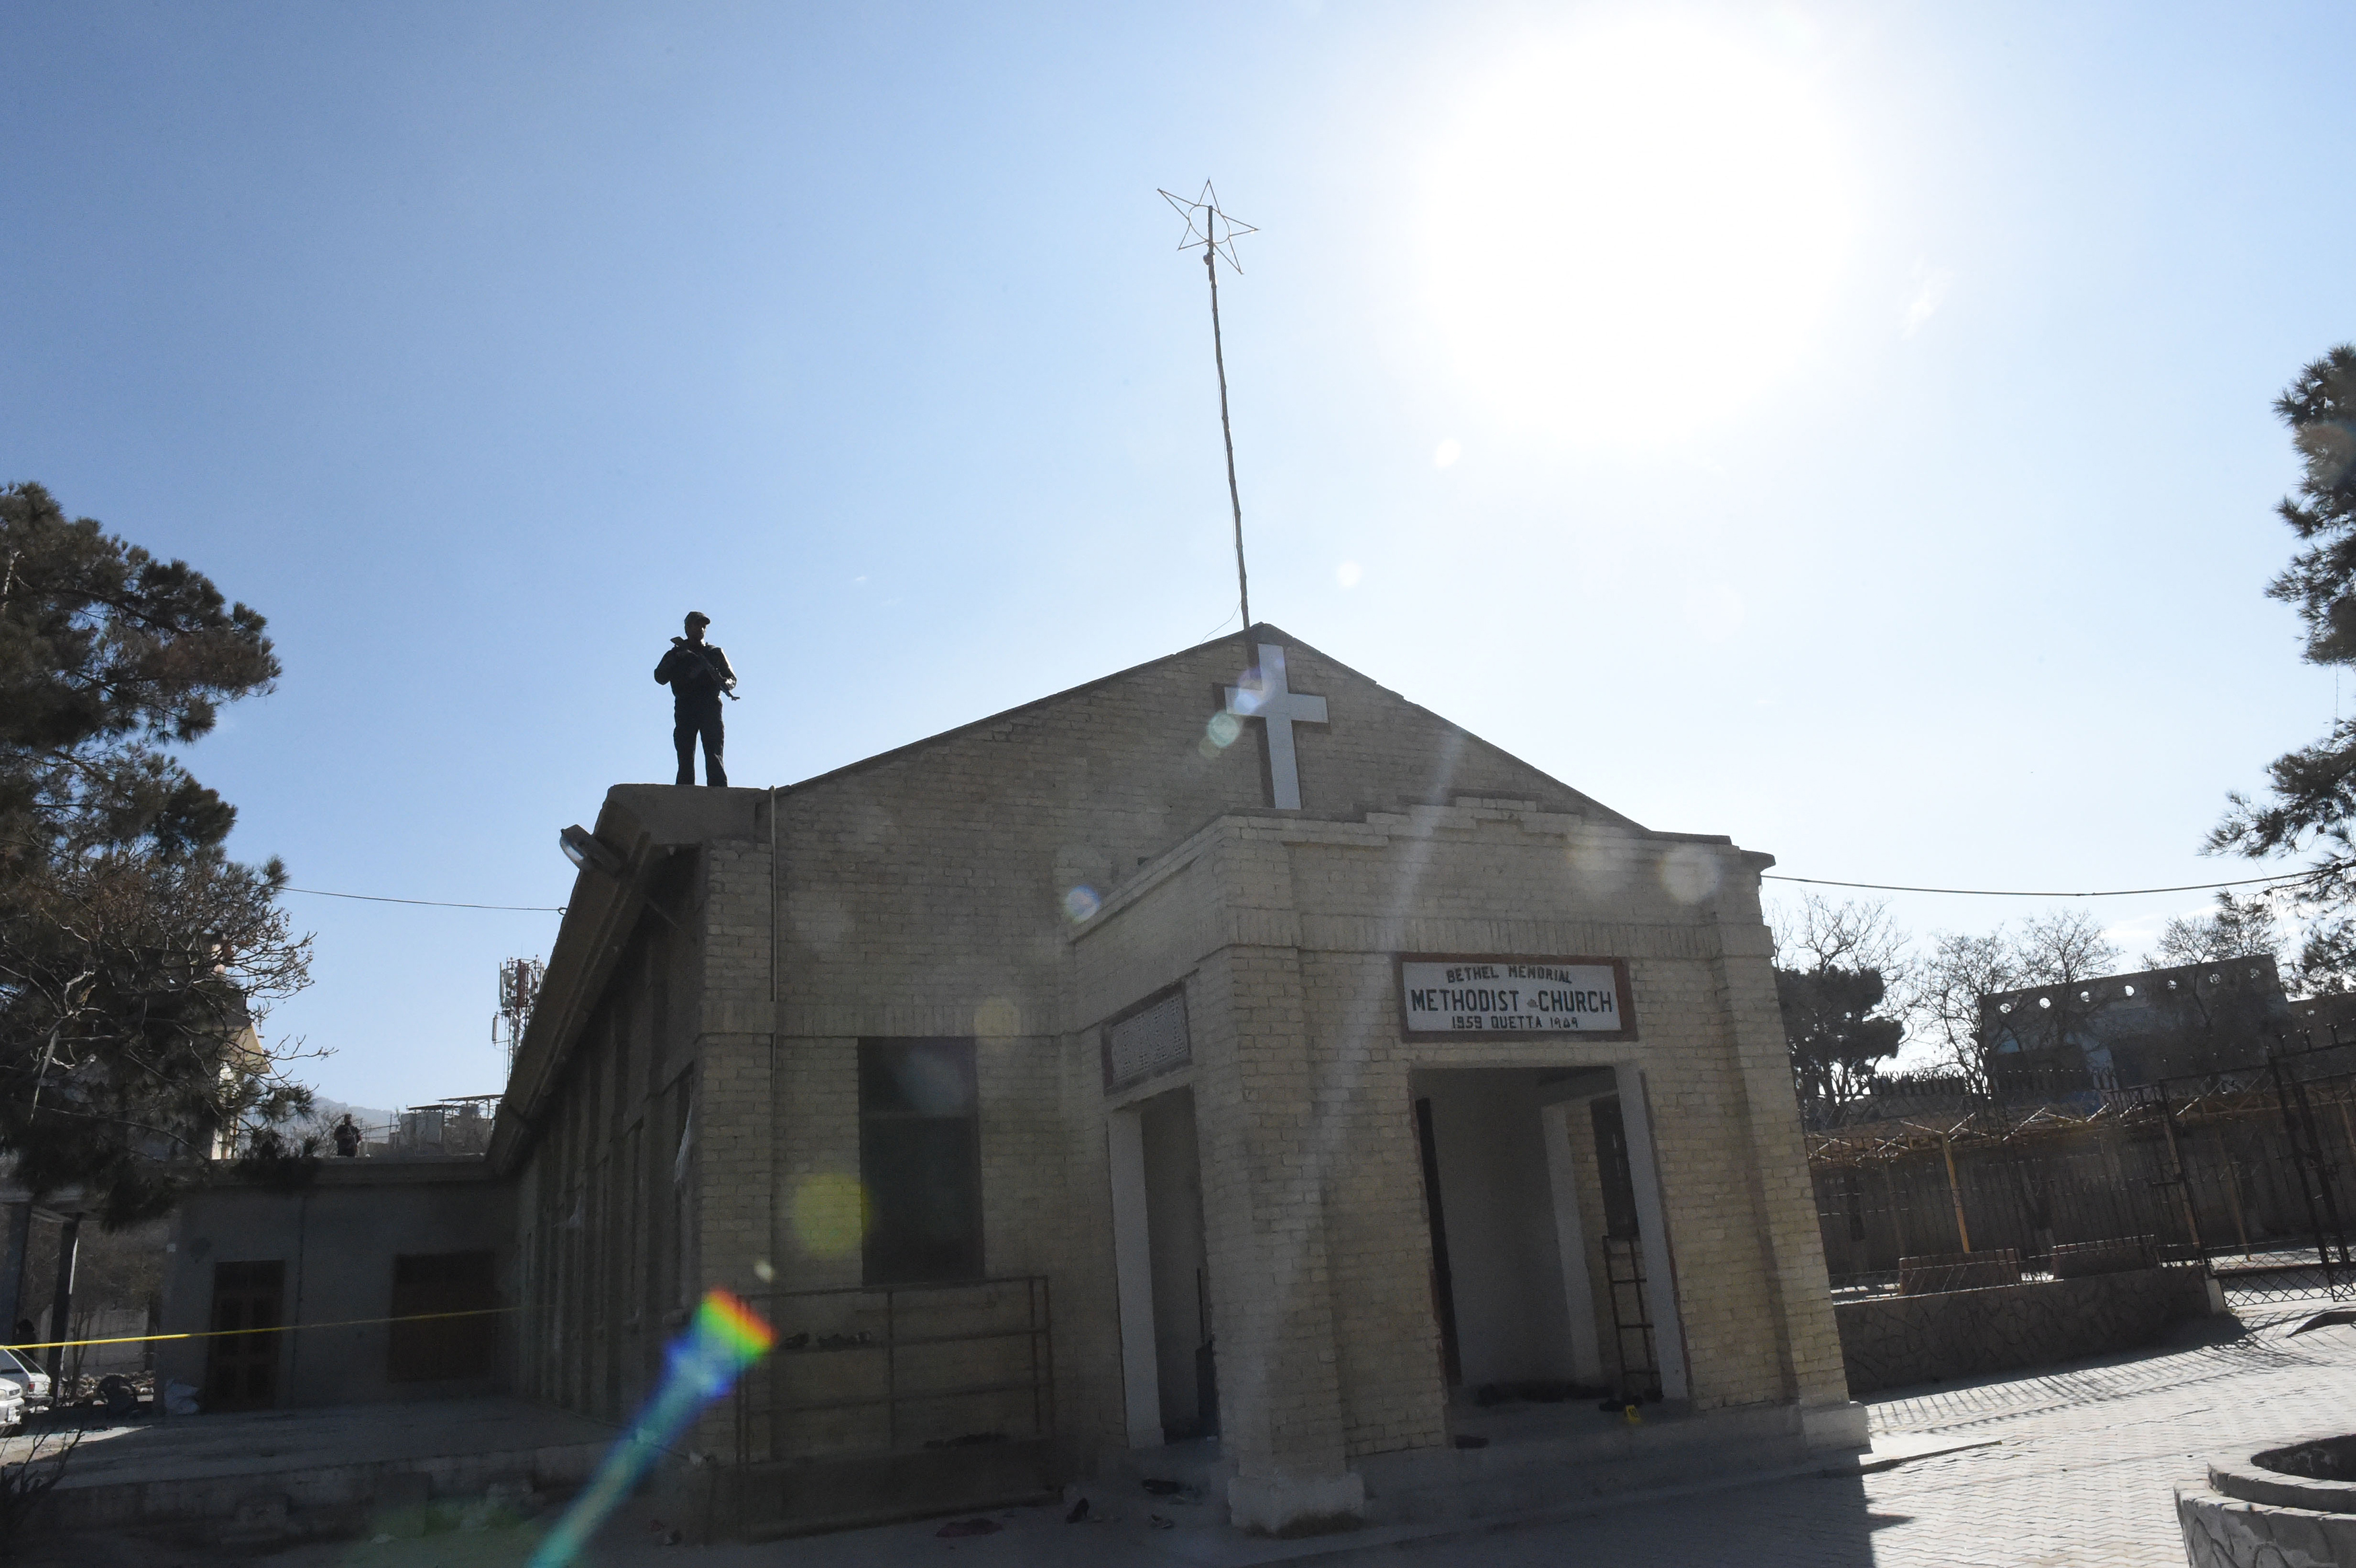 A policeman December 18 stands guard on the roof of Bethel Memorial Methodist Church in Quetta, a day after an ISIS suicide bombing that targeted the church. [Banaras Khan/AFP]